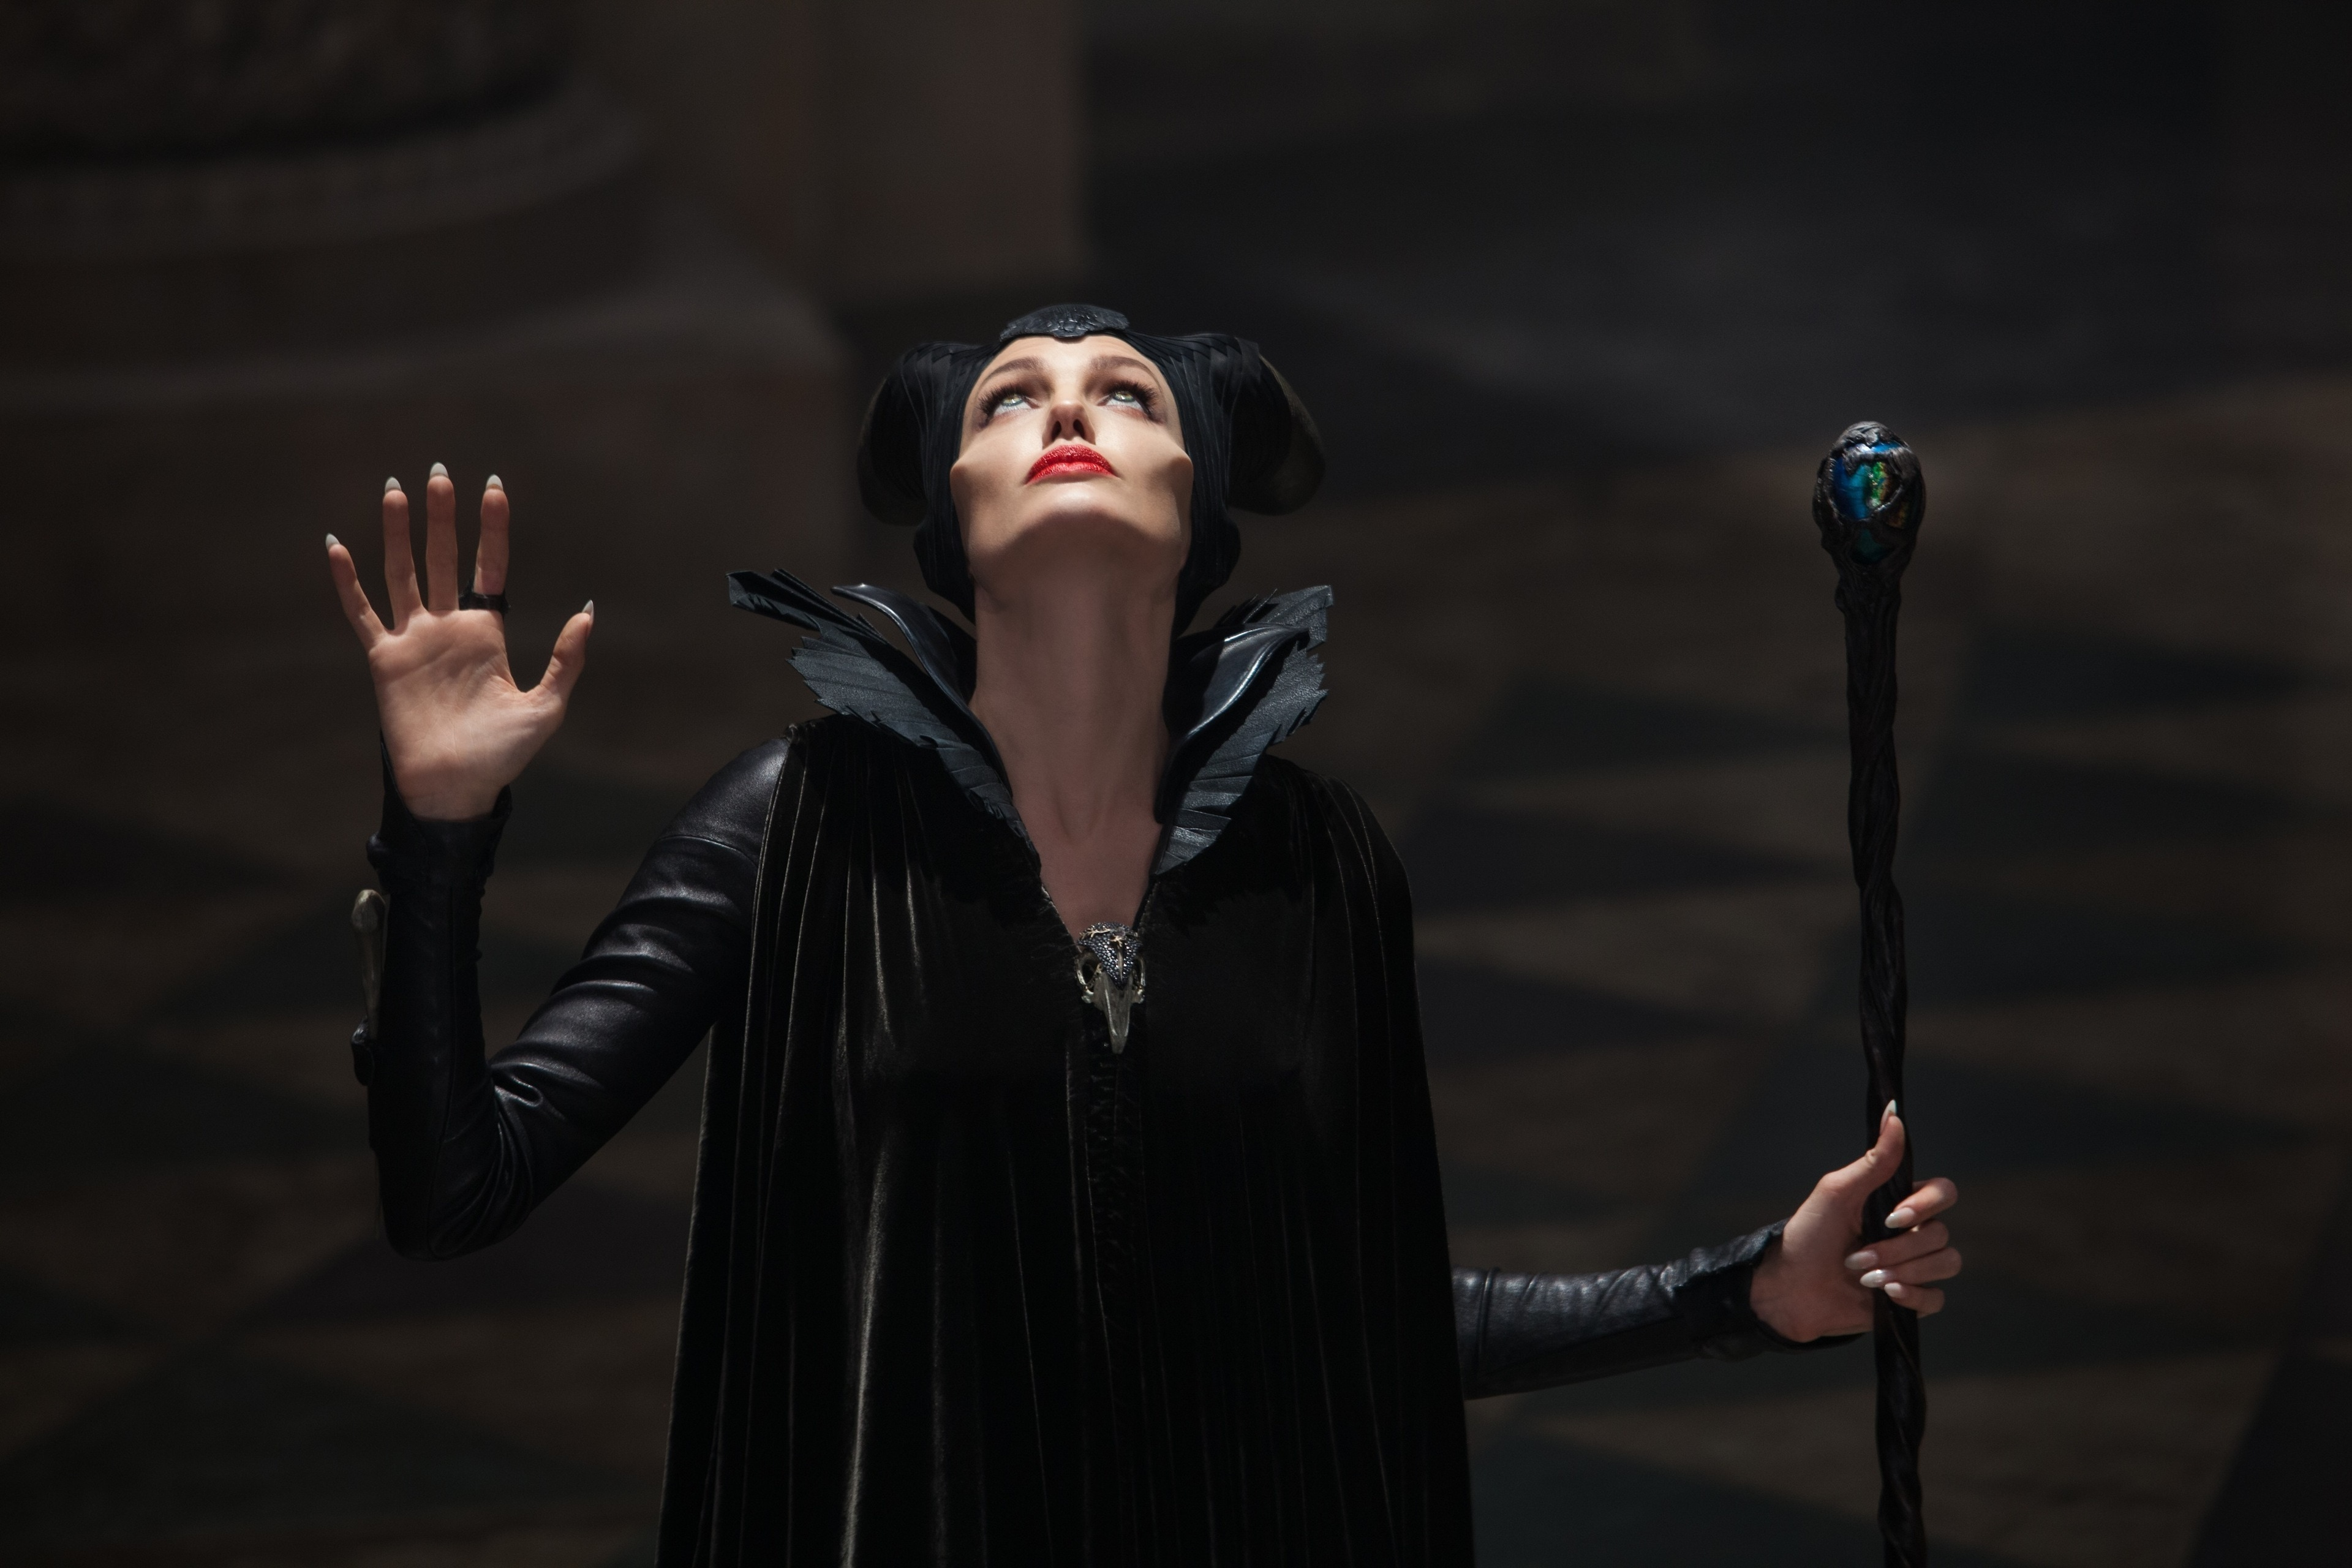 """Angelina Jolie as Maleficent, staff in hand, looking up at the light in the movie """"Maleficent"""""""